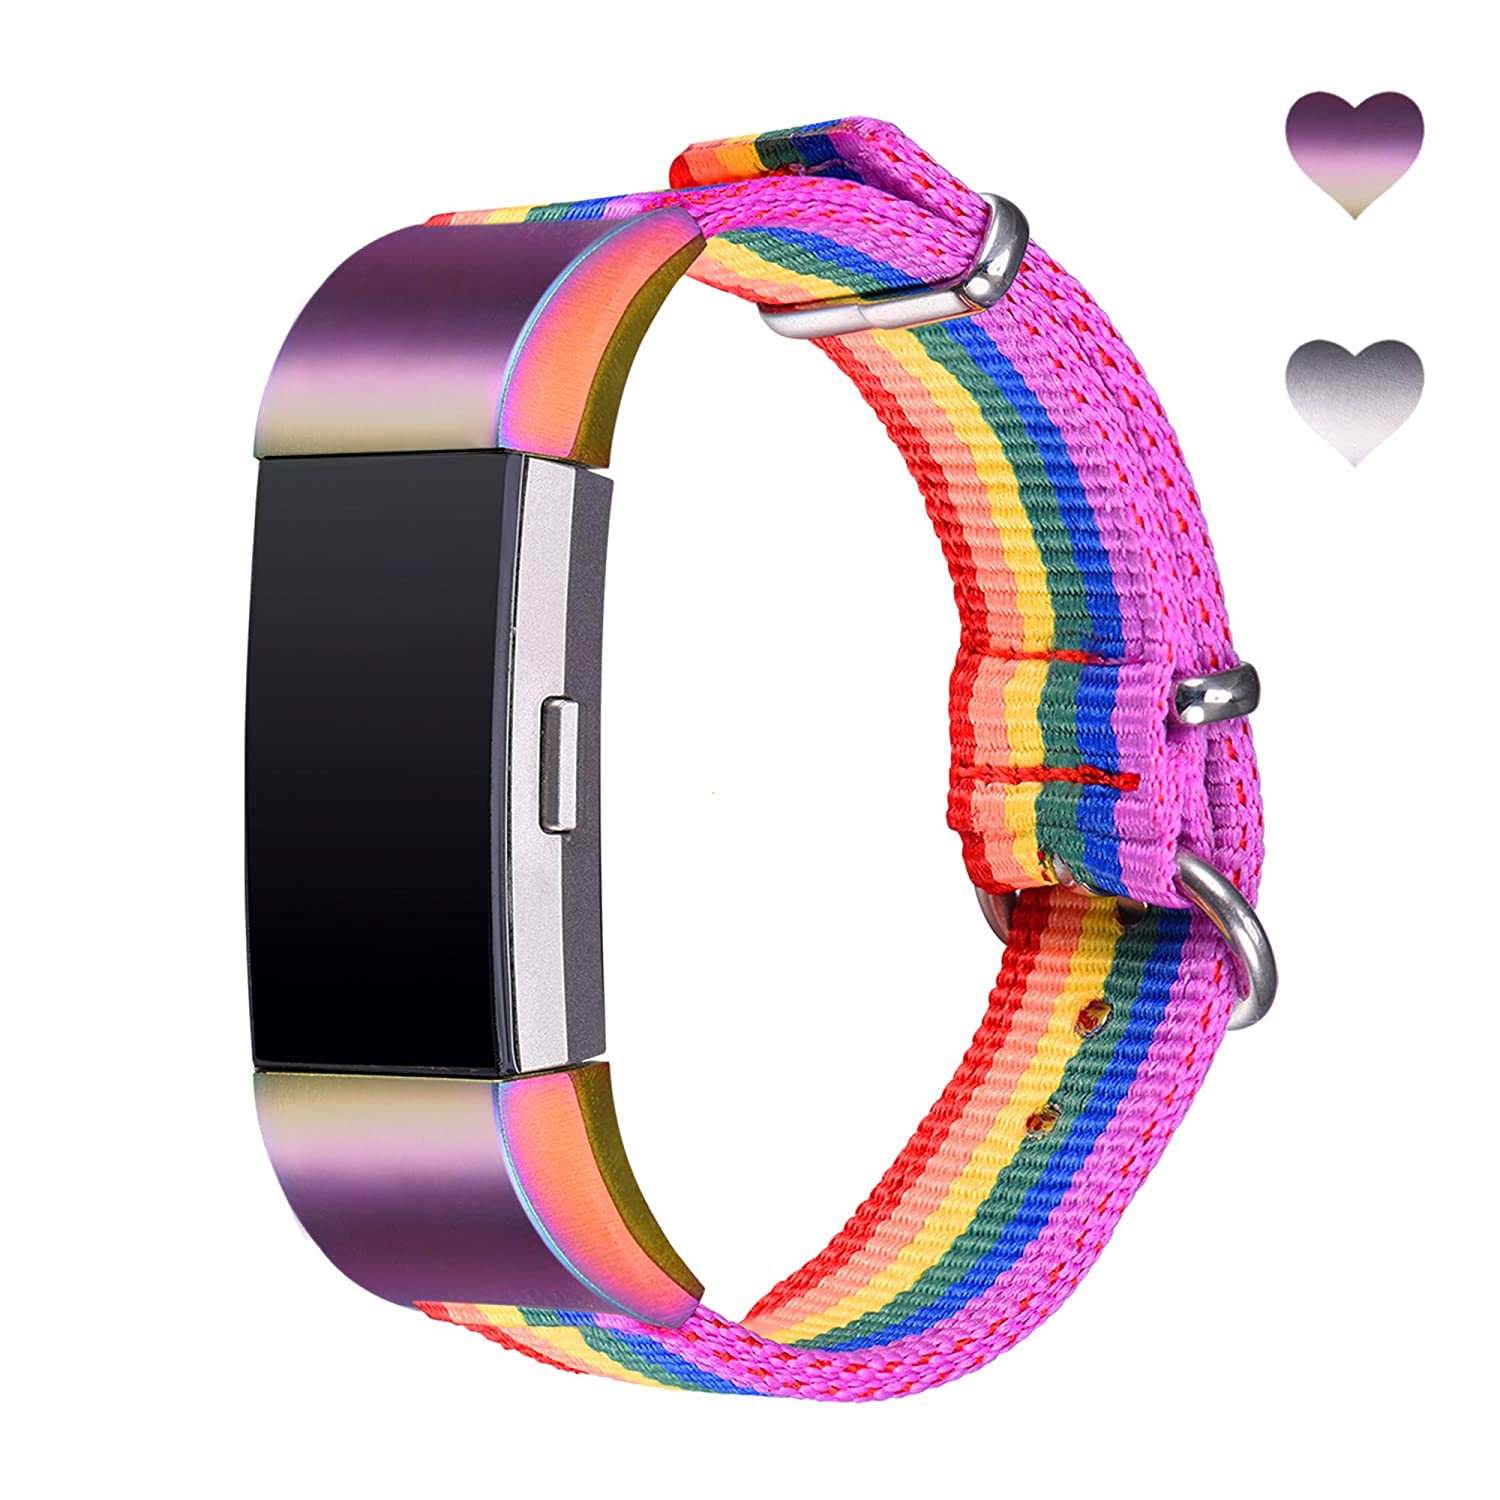 Bandmax Armband für Fitbit Charge 2, Kristall Metall Gliederarmband Ersatzarmband Wrist Armband Uhrenarmband für Fitbit Charge 2 #BM-FBC2827